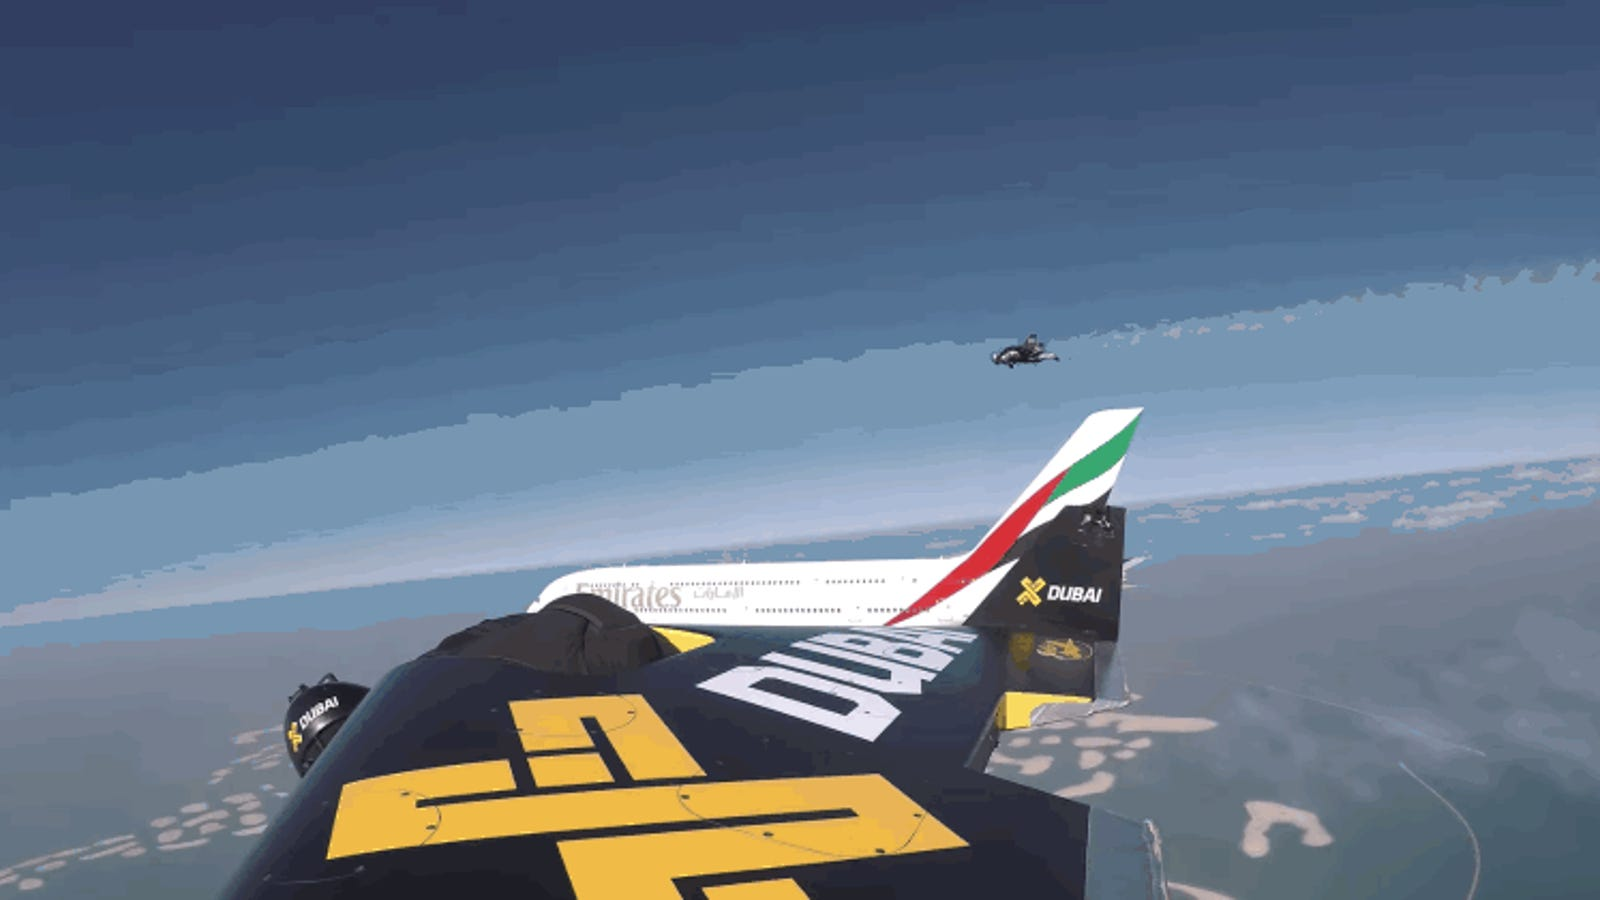 Watch These Jetmen Fly Wing-to-Wing With an Airbus A380 Above Dubai